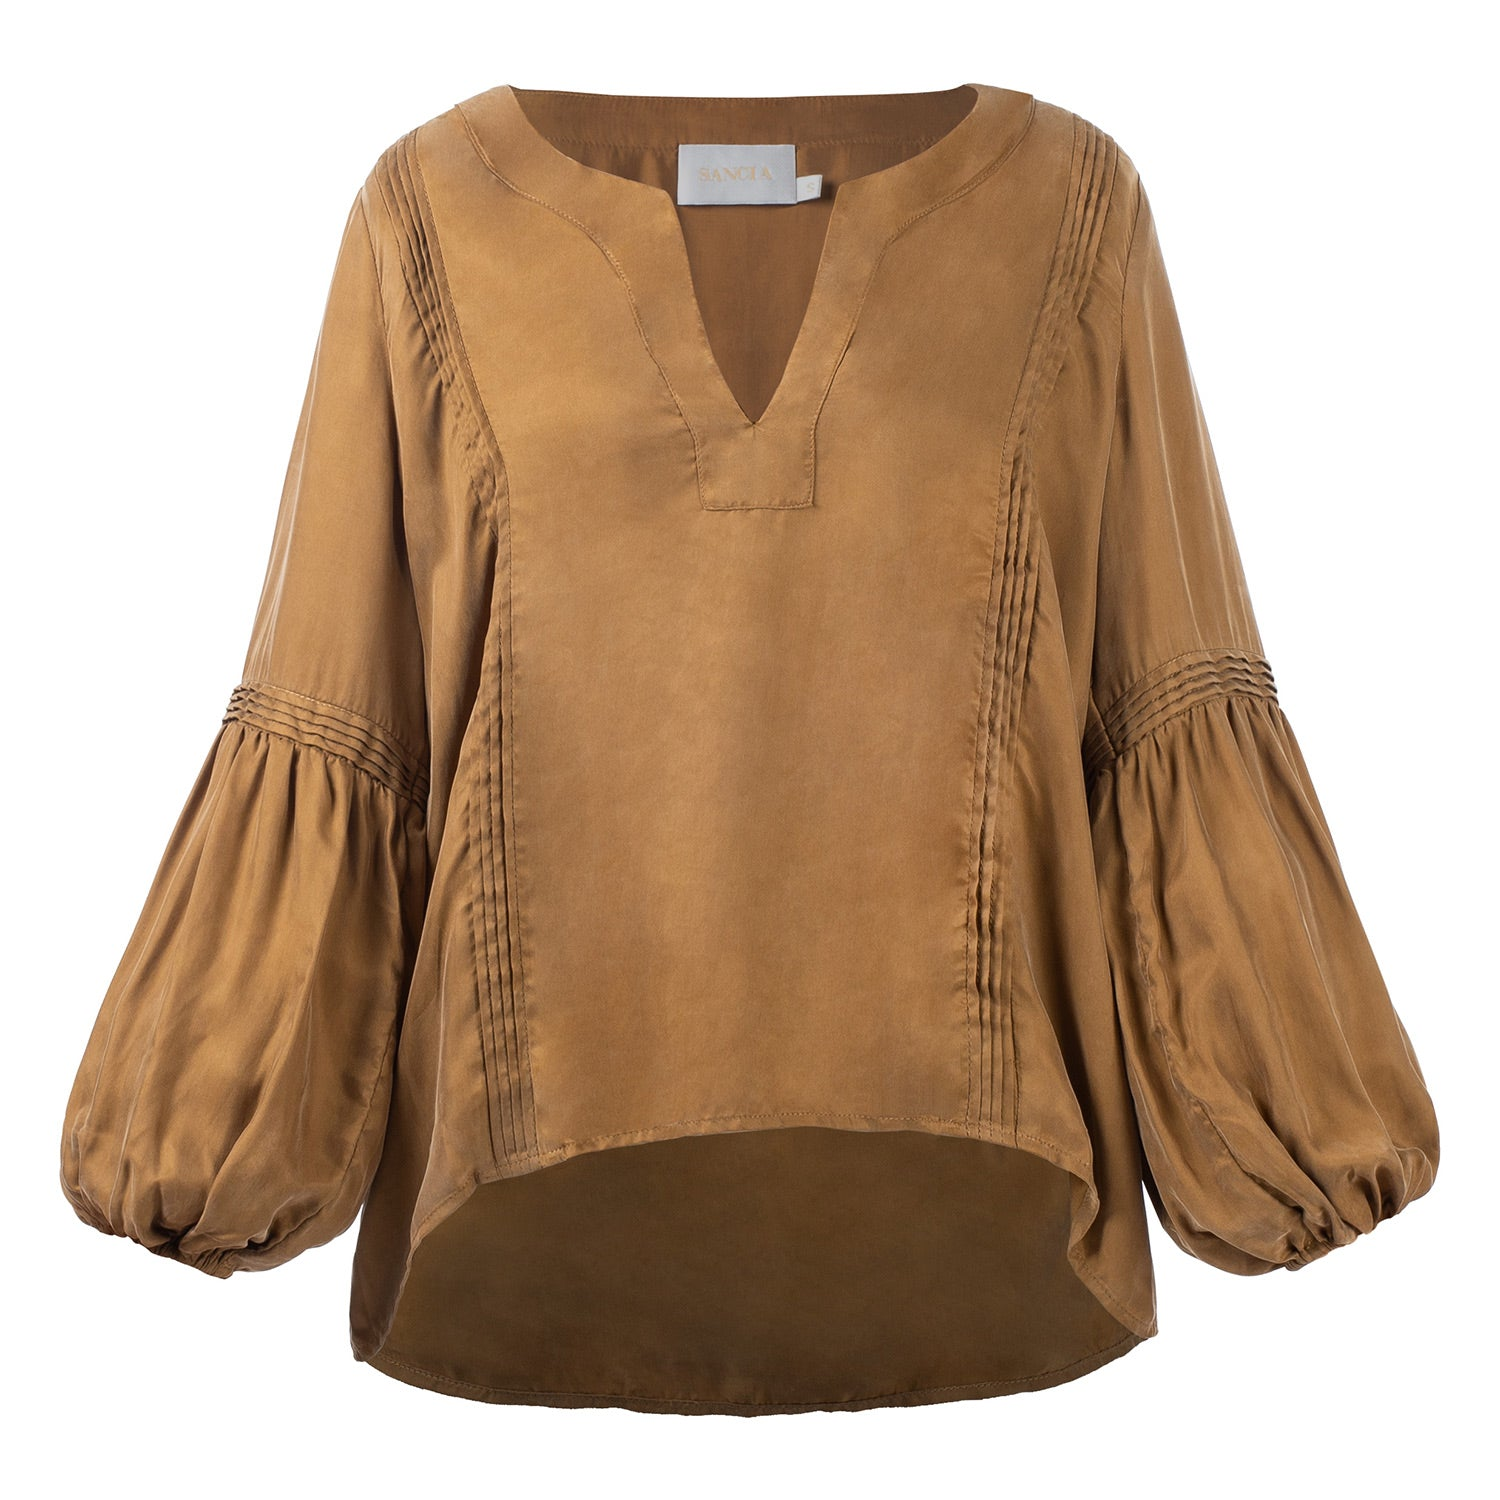 THE MIEKO BLOUSE